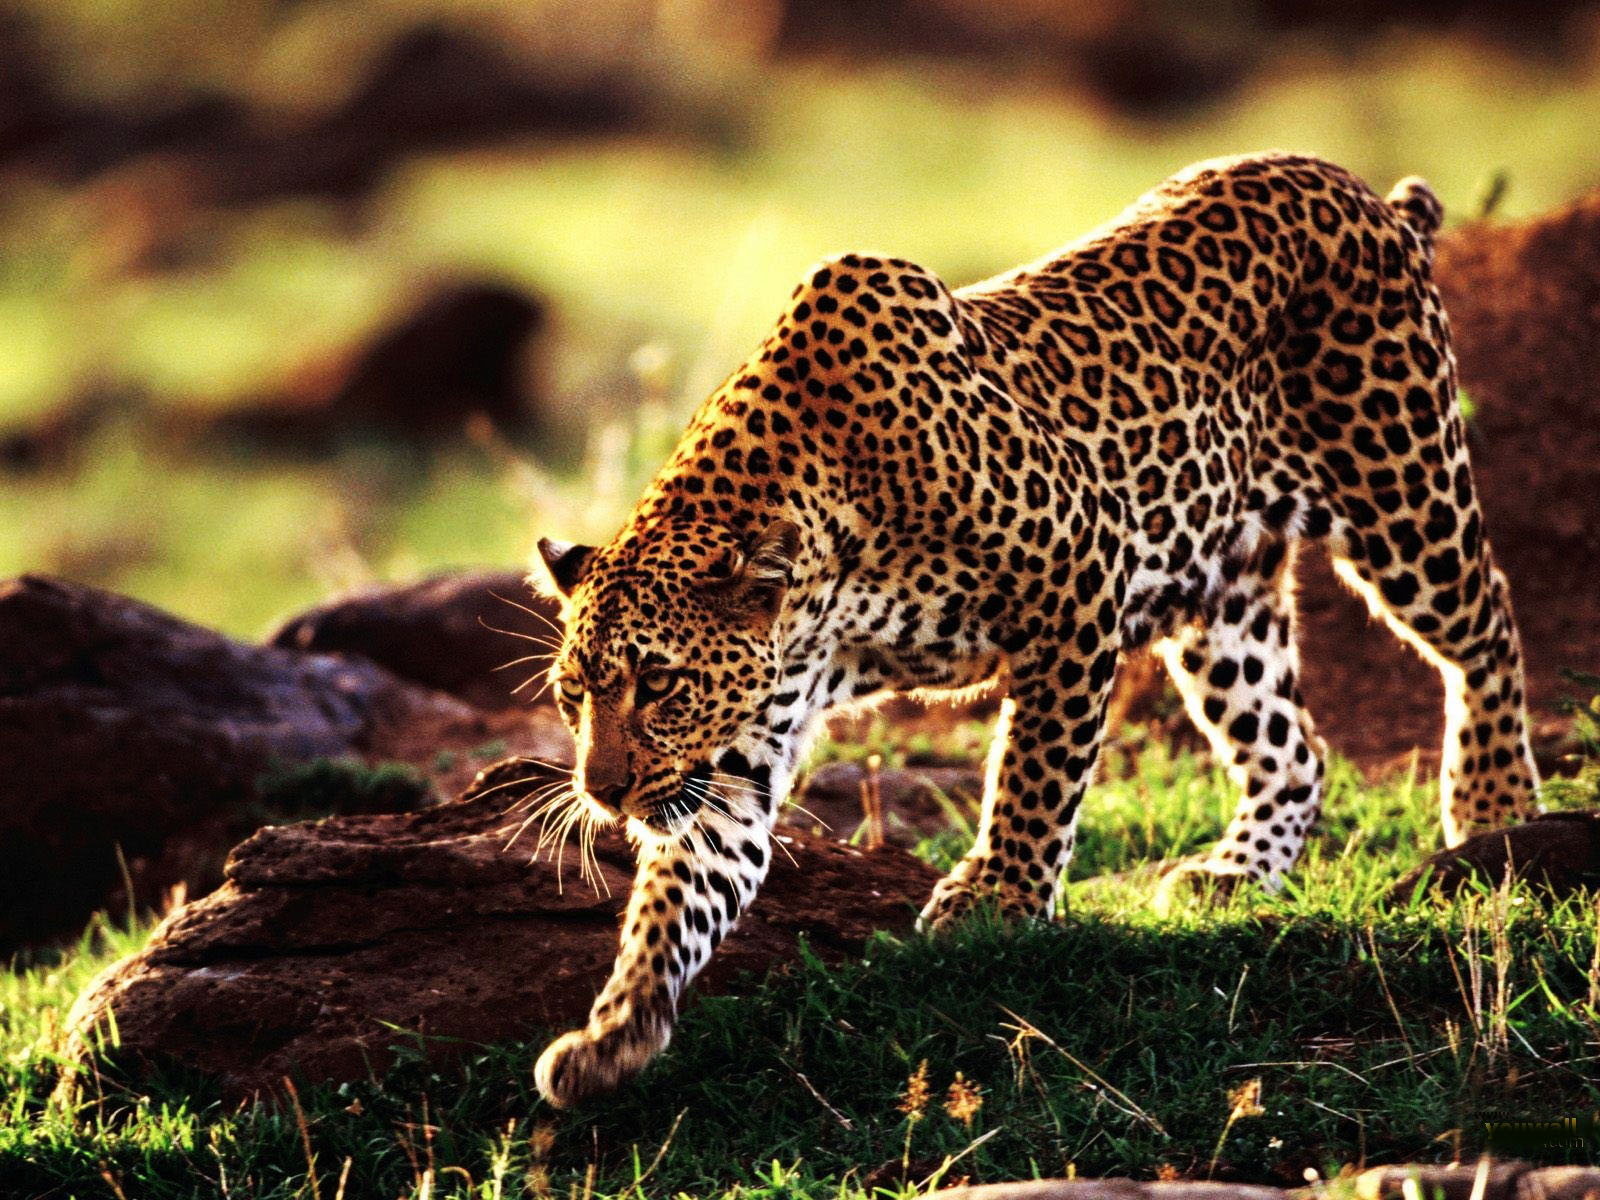 Beautiful Cheetah Latest Hd Wallpapers/Images 2013 | Beautiful And Dangerous Animals/Birds Hd ...